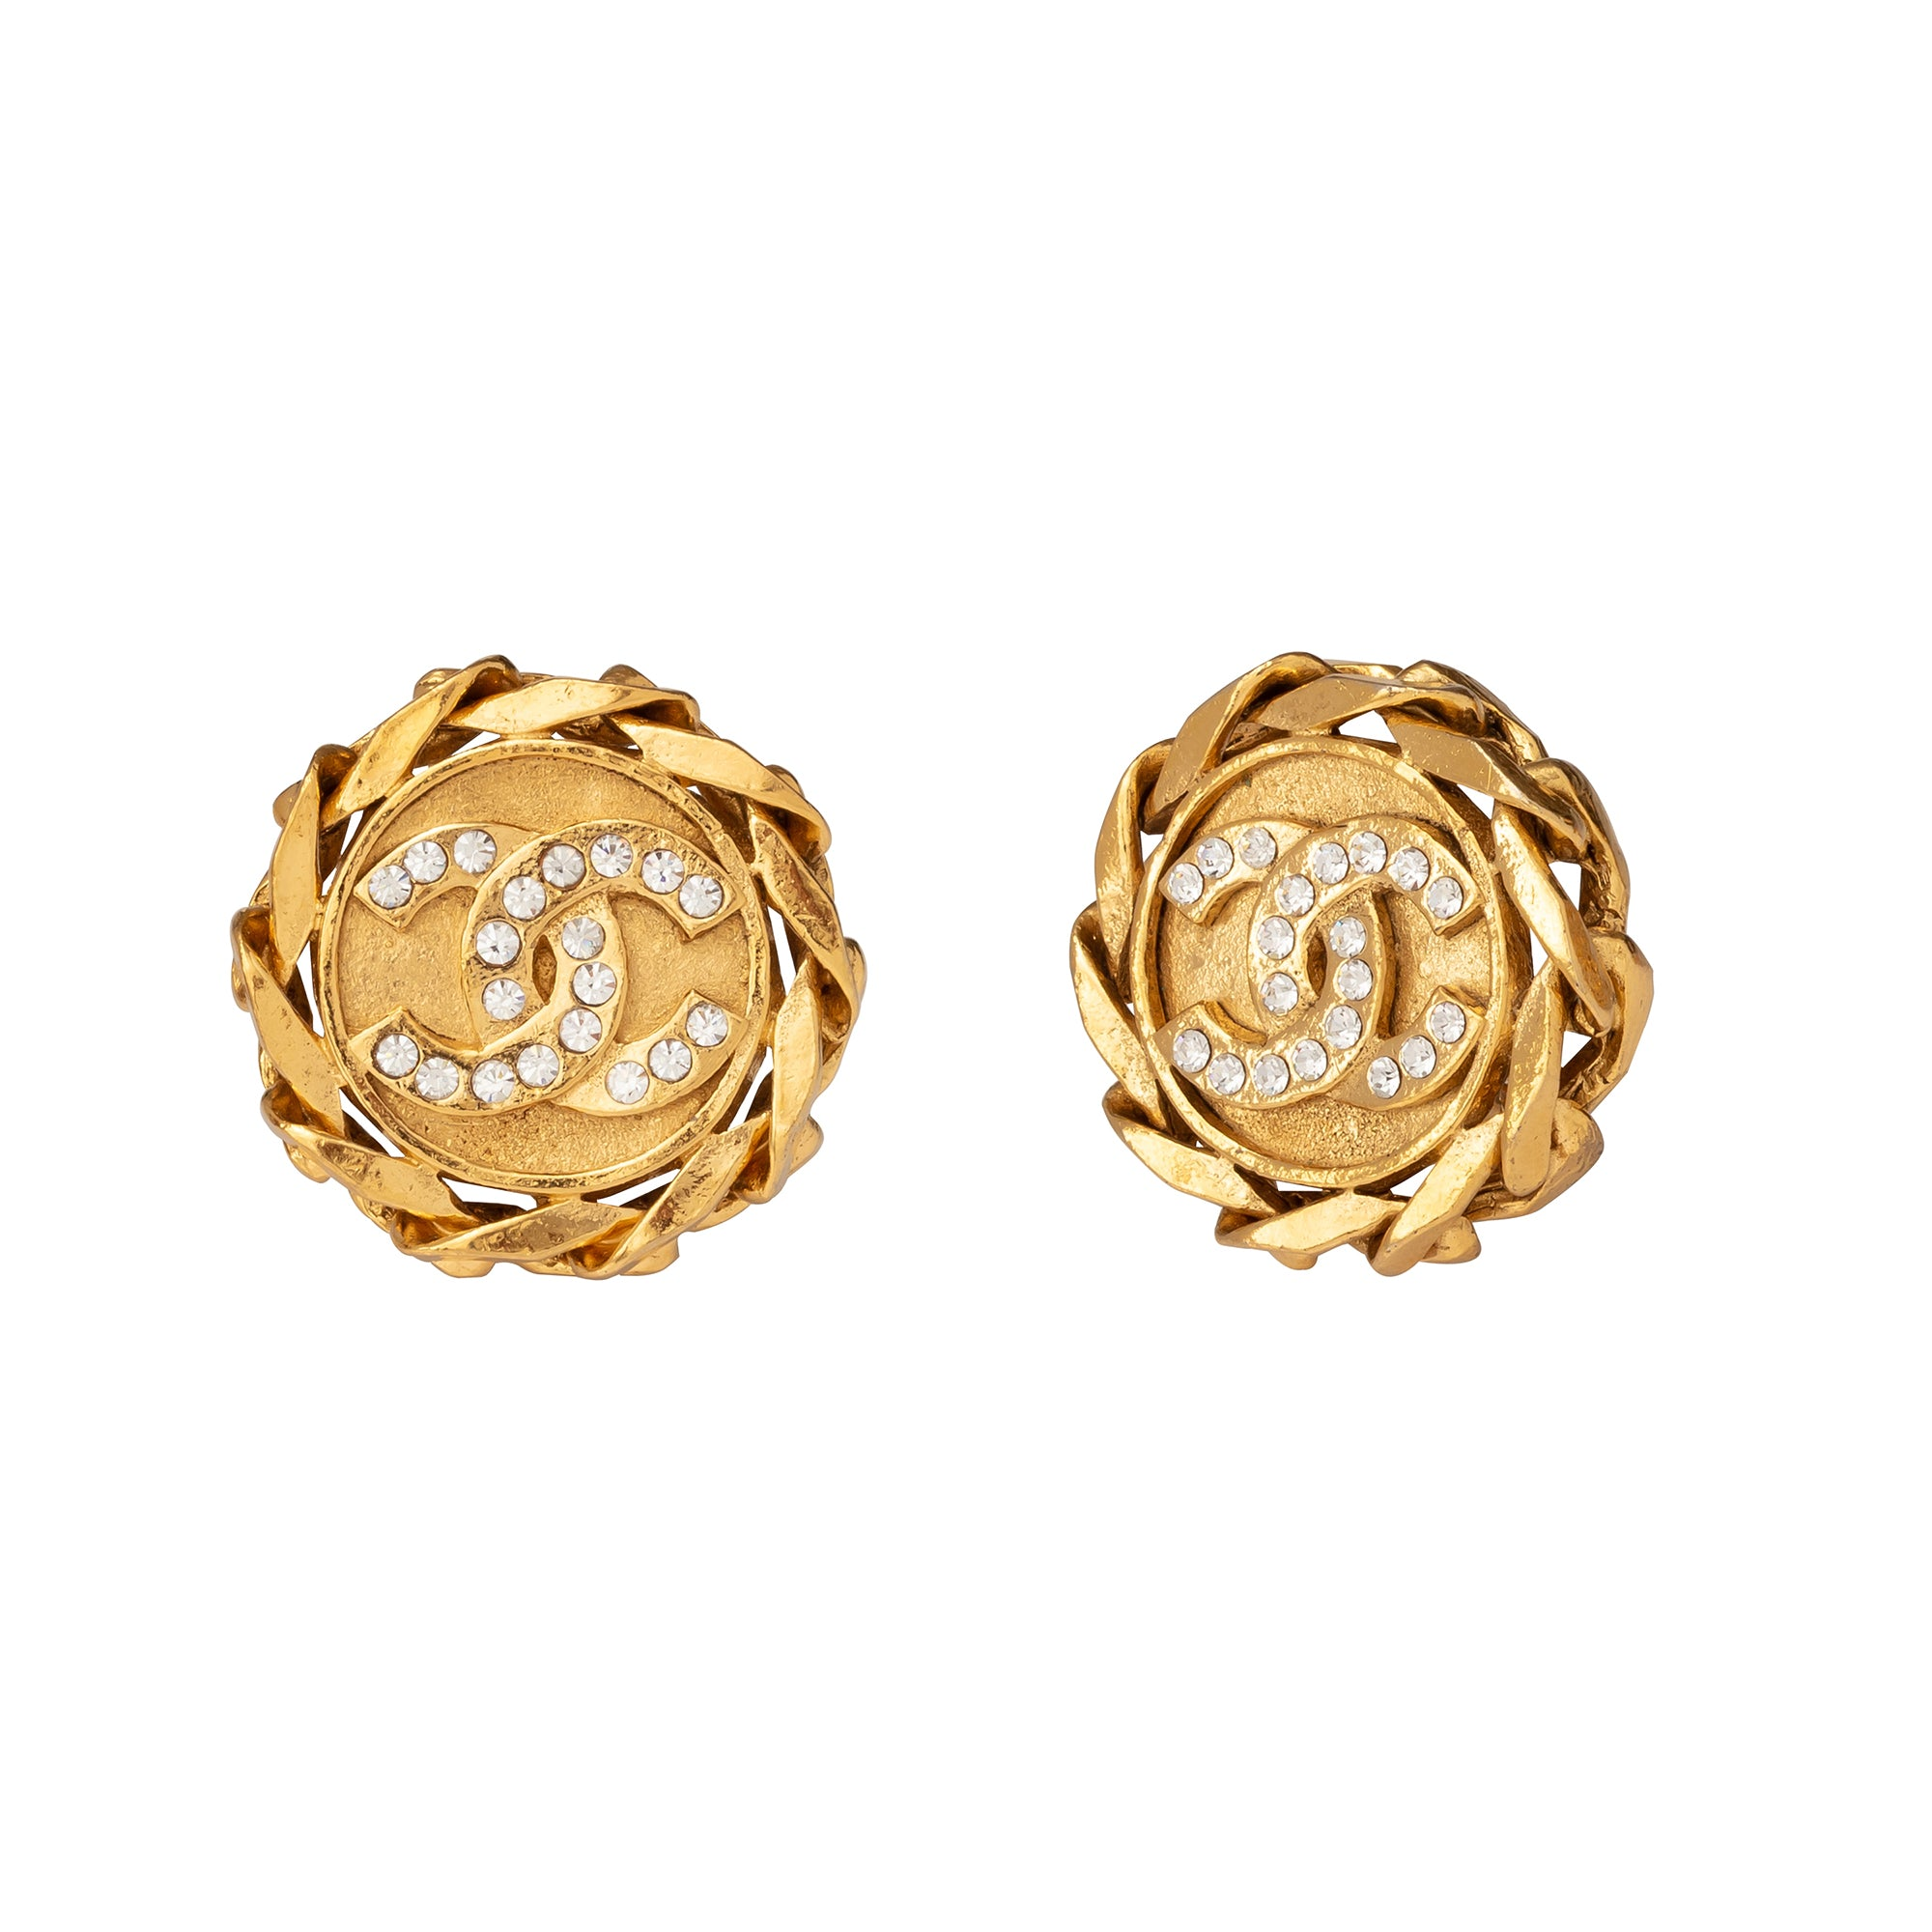 Chanel Chain Border Logo Earrings - Antique & Vintage - Earrings | Broken English Jewelry